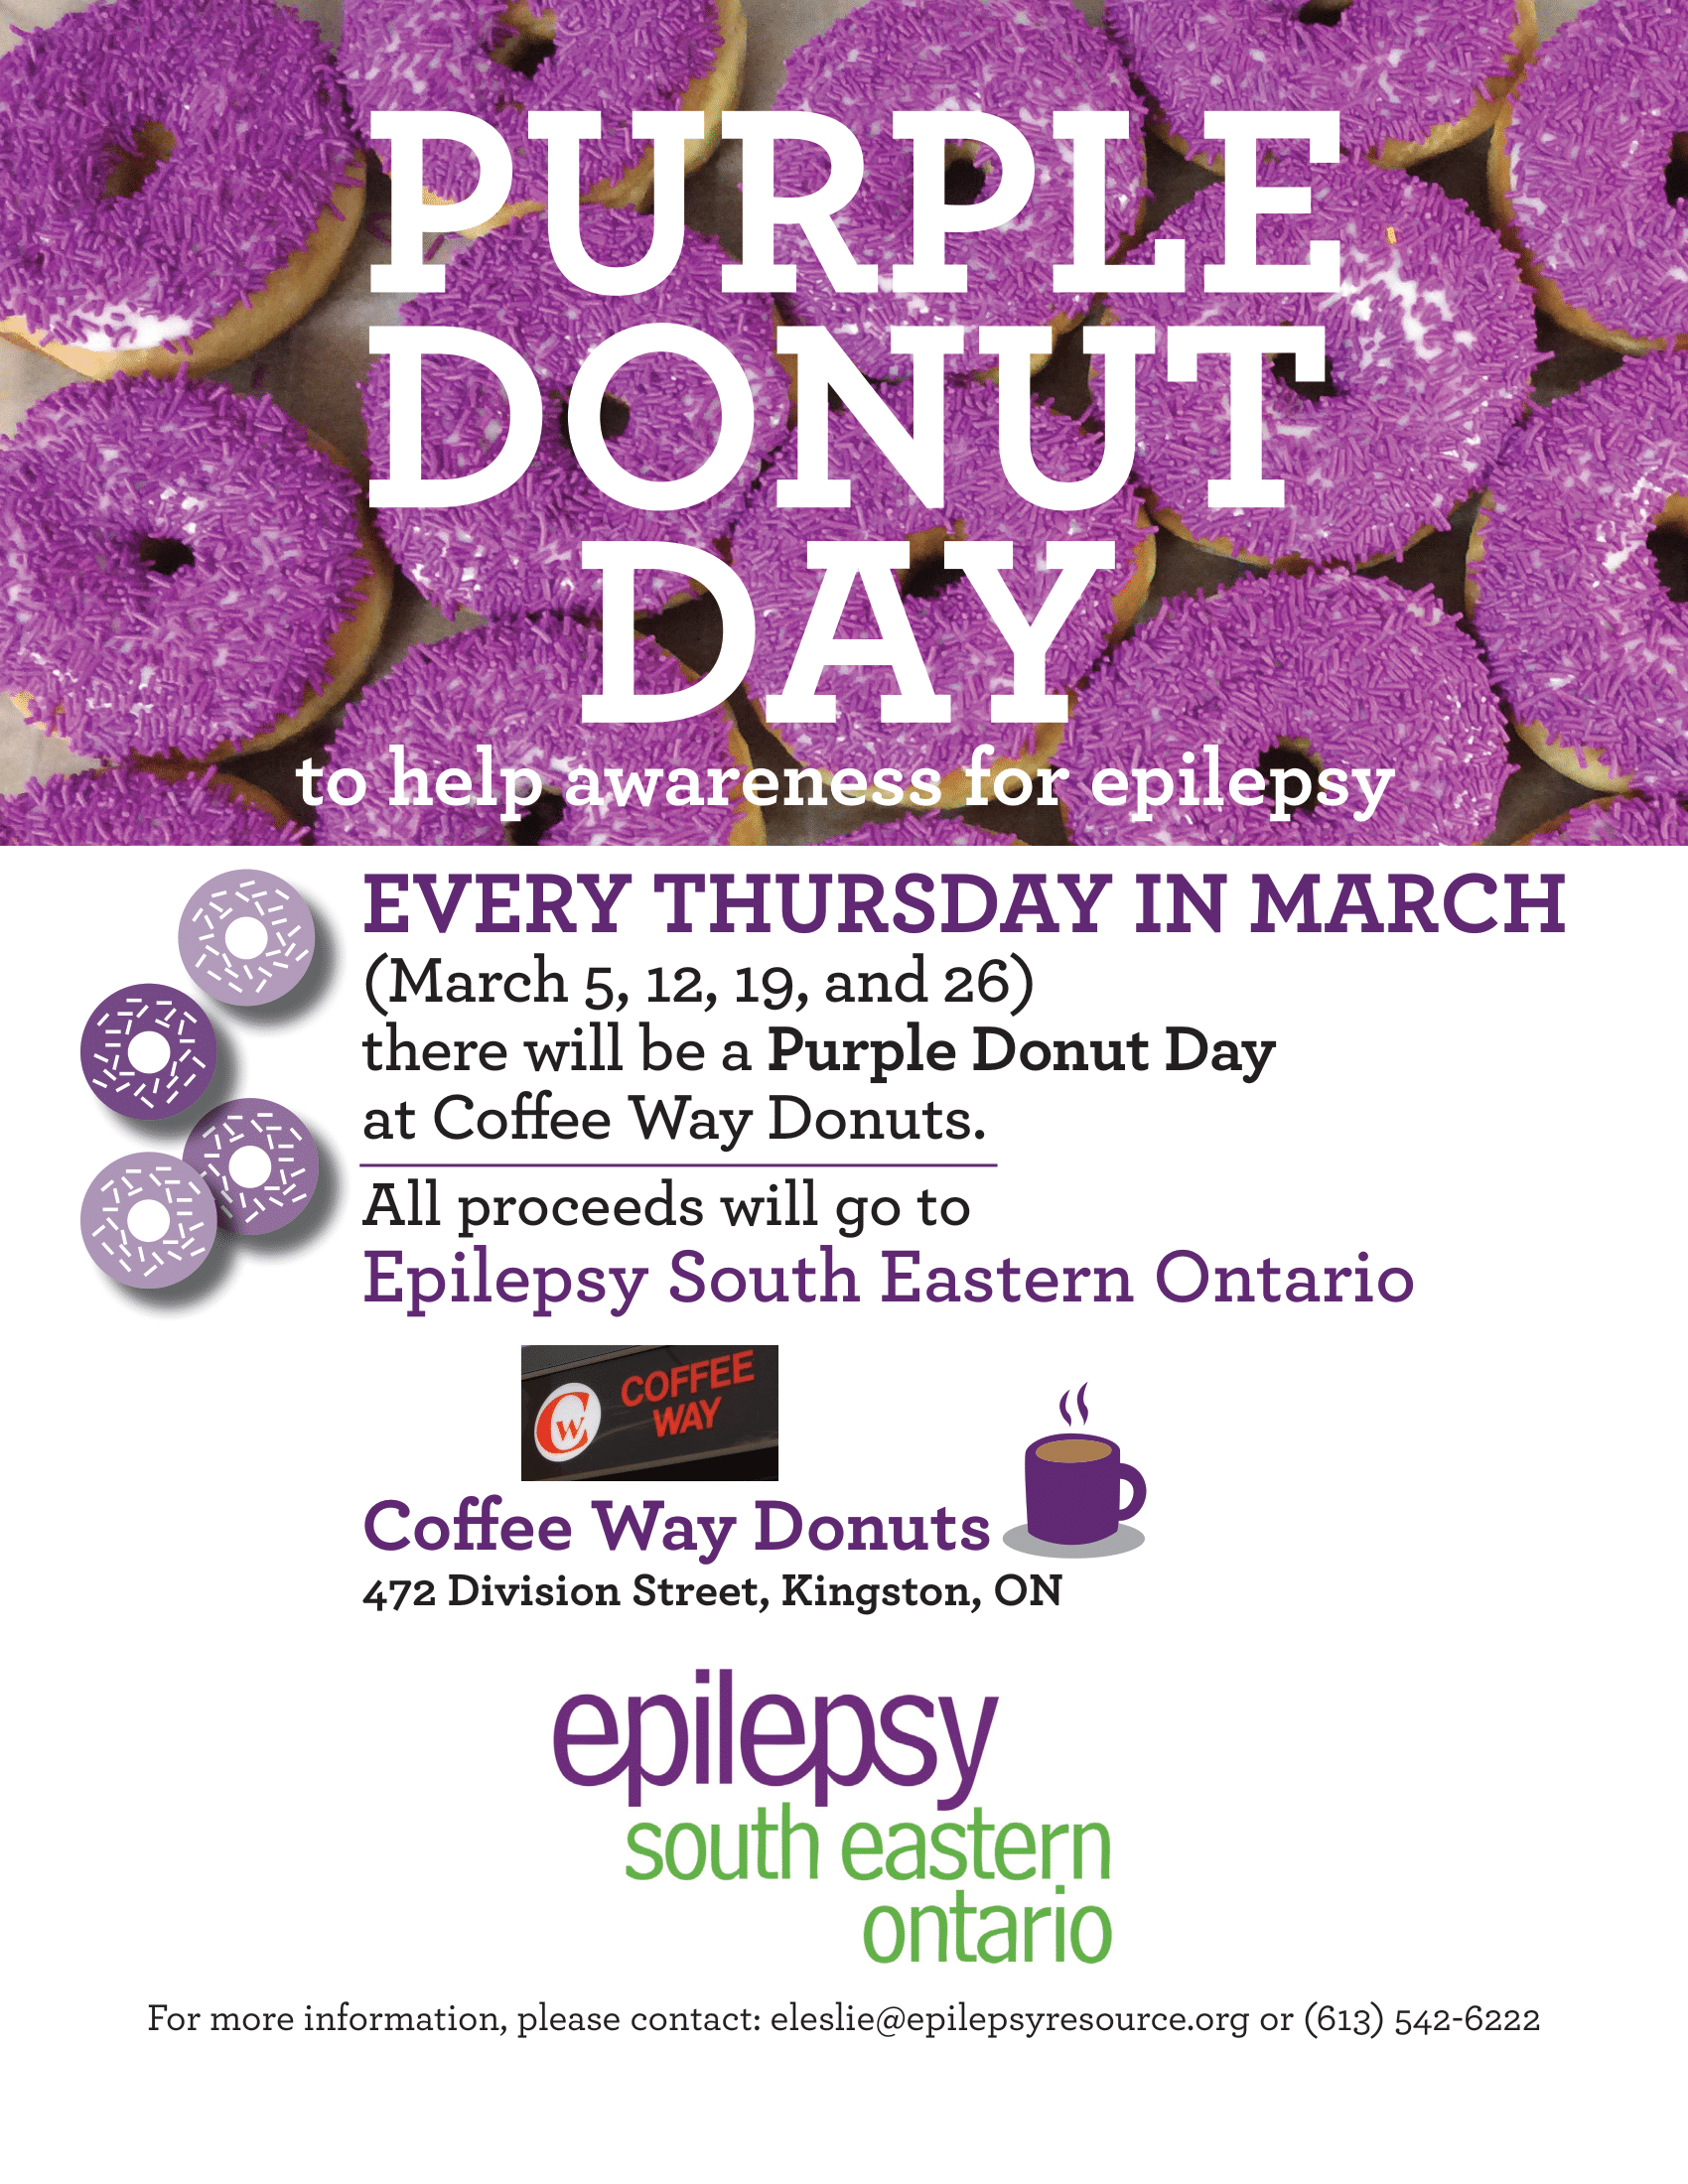 Every Thursday in March is Purple Donut Day at Coffee Way Donuts.